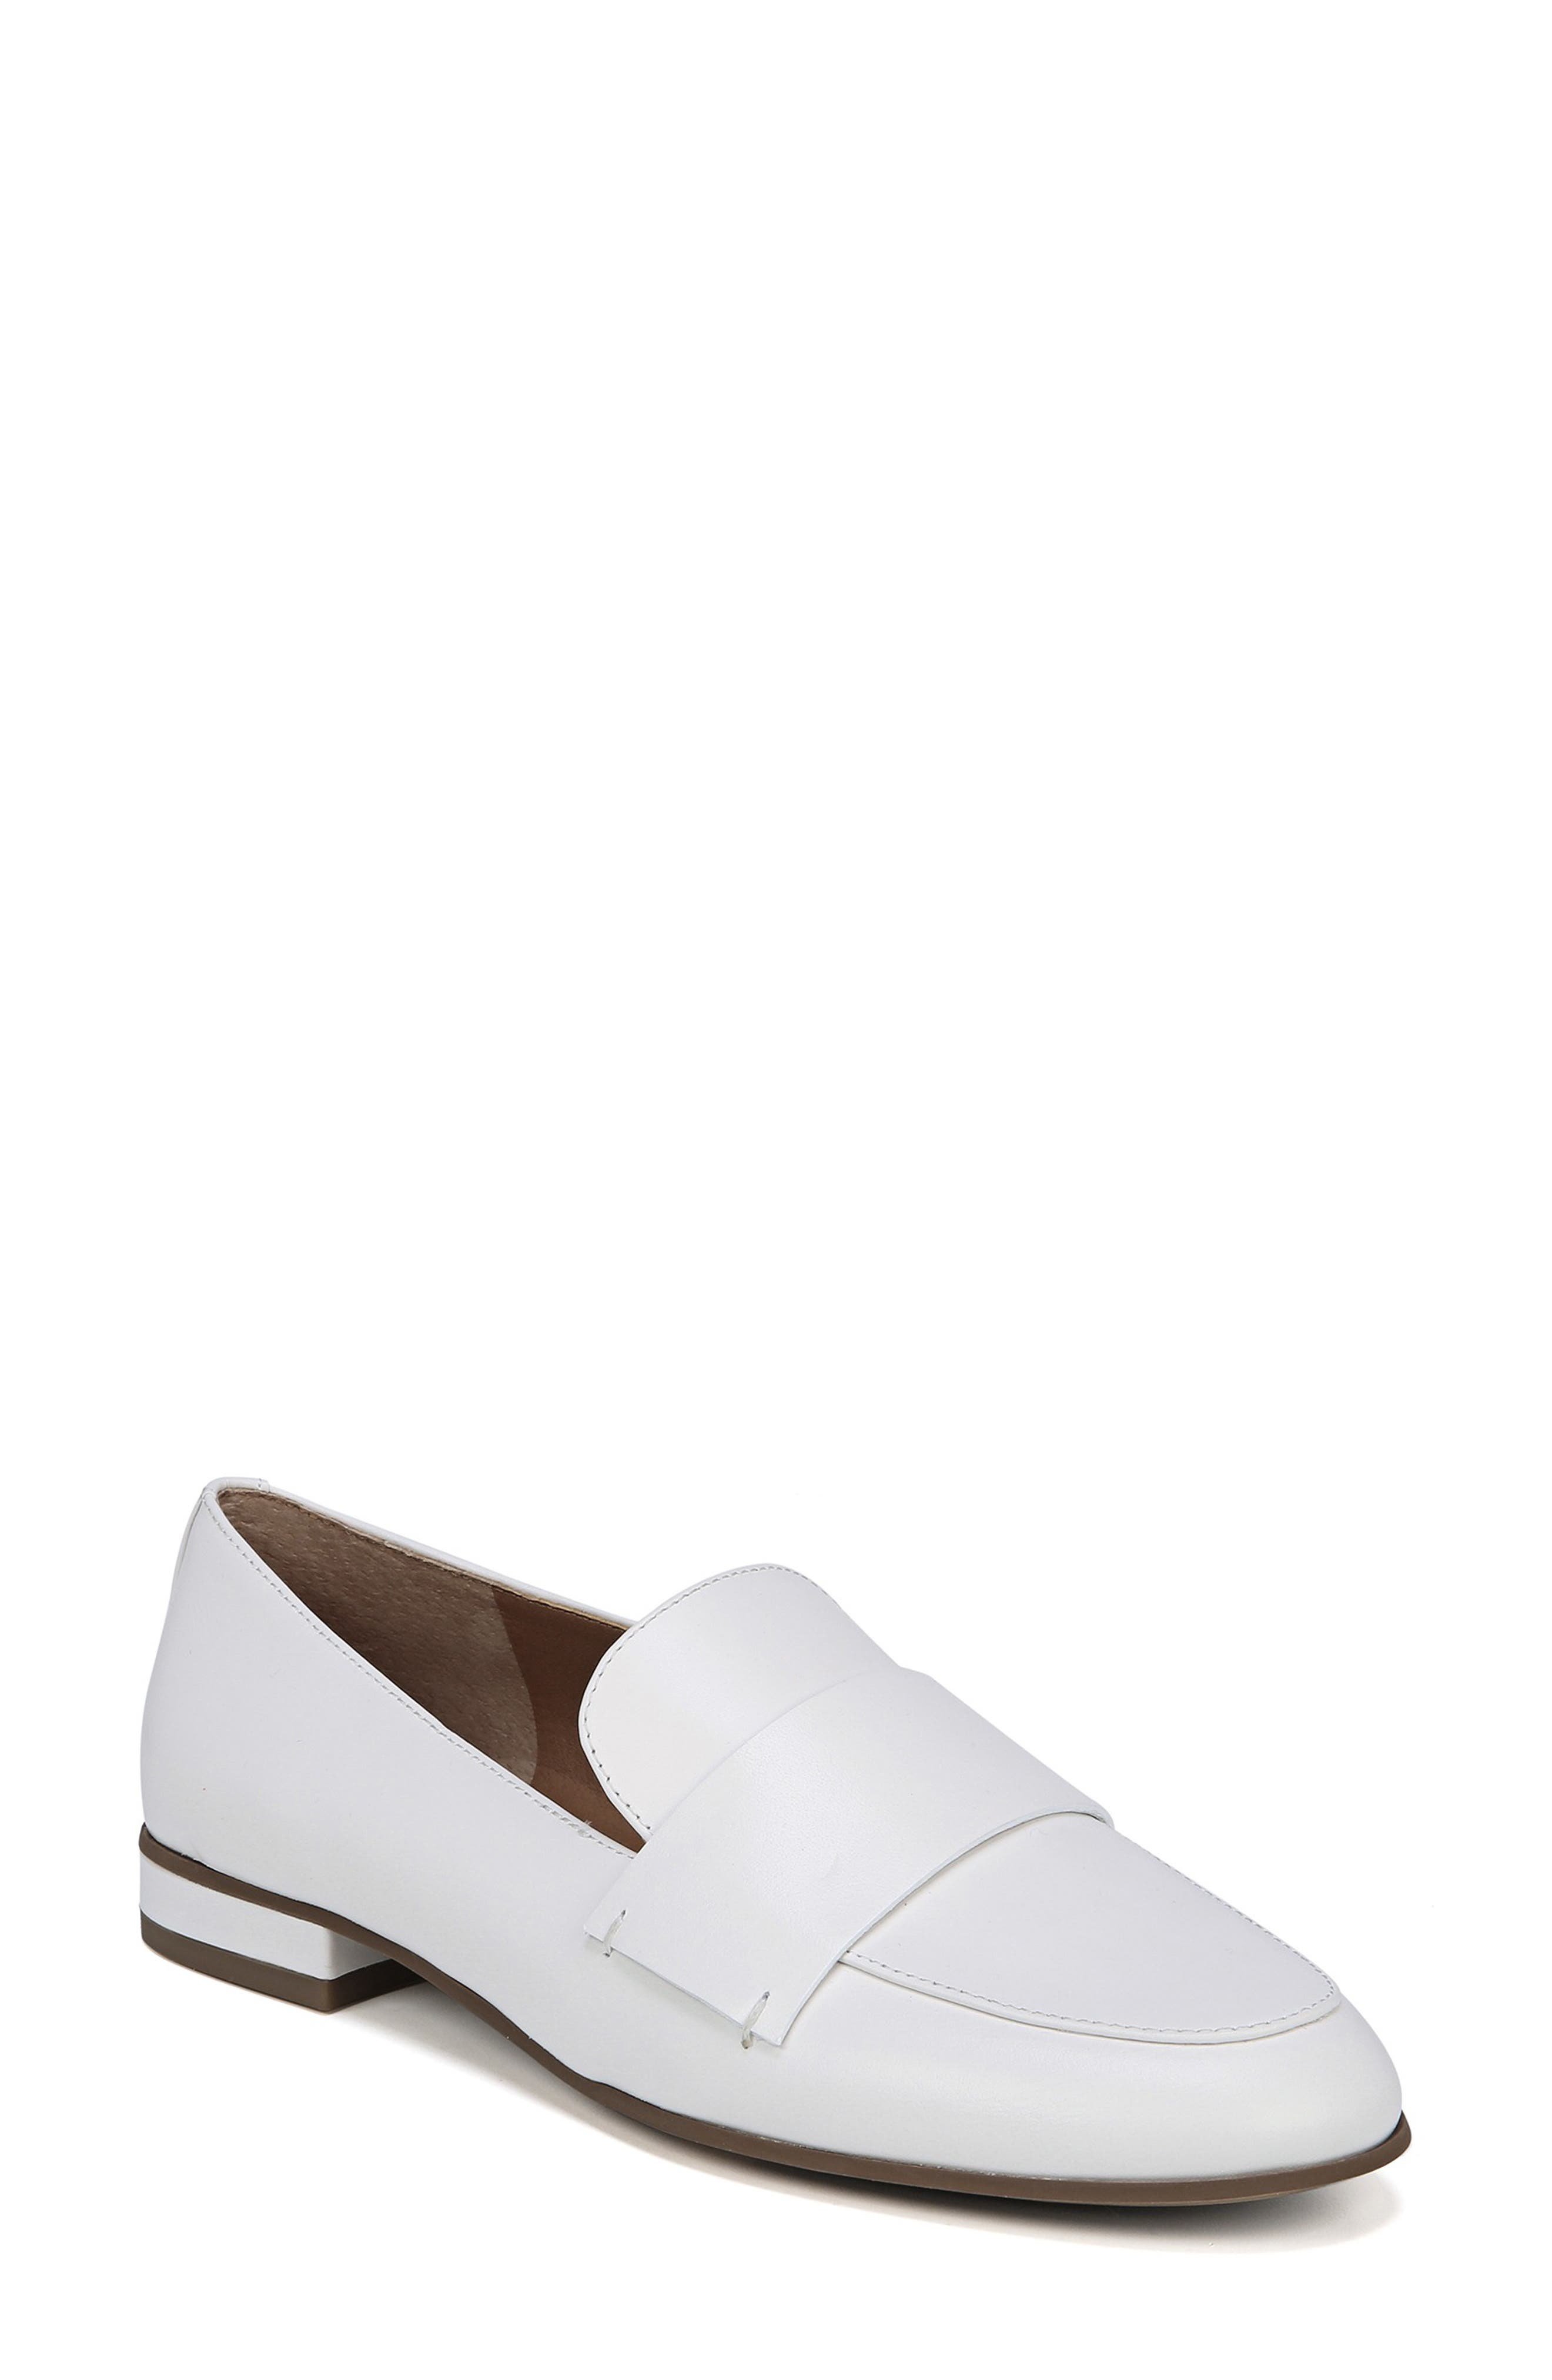 Kip Loafer,                             Main thumbnail 1, color,                             WHITE LEATHER